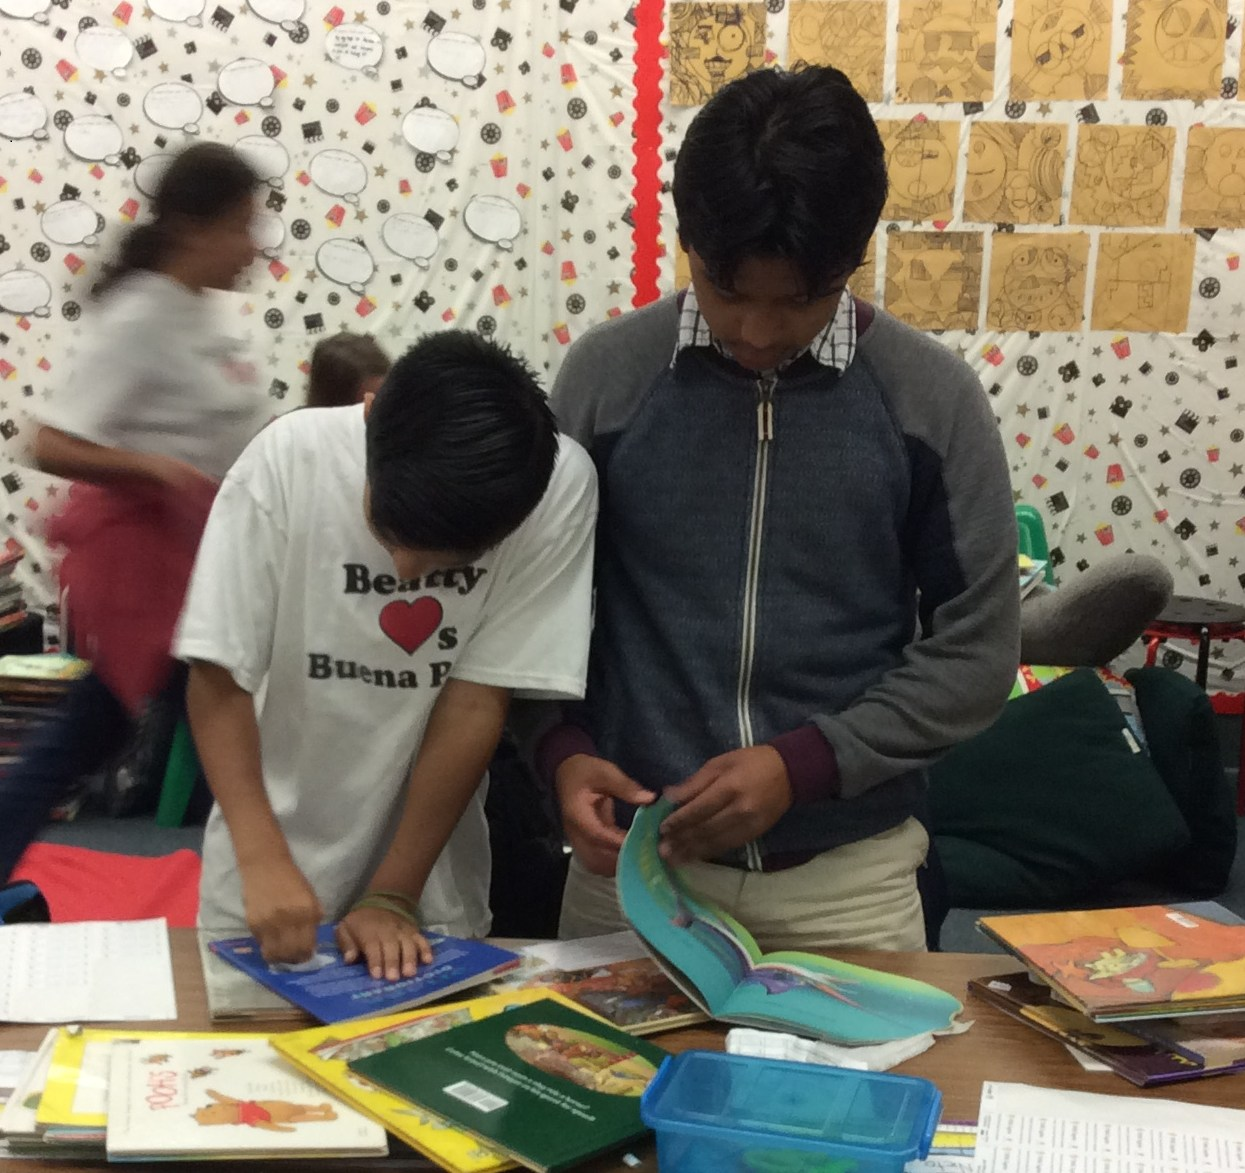 Beatty loves Buena Park student volunteers clean and fix books to donate to those in need.